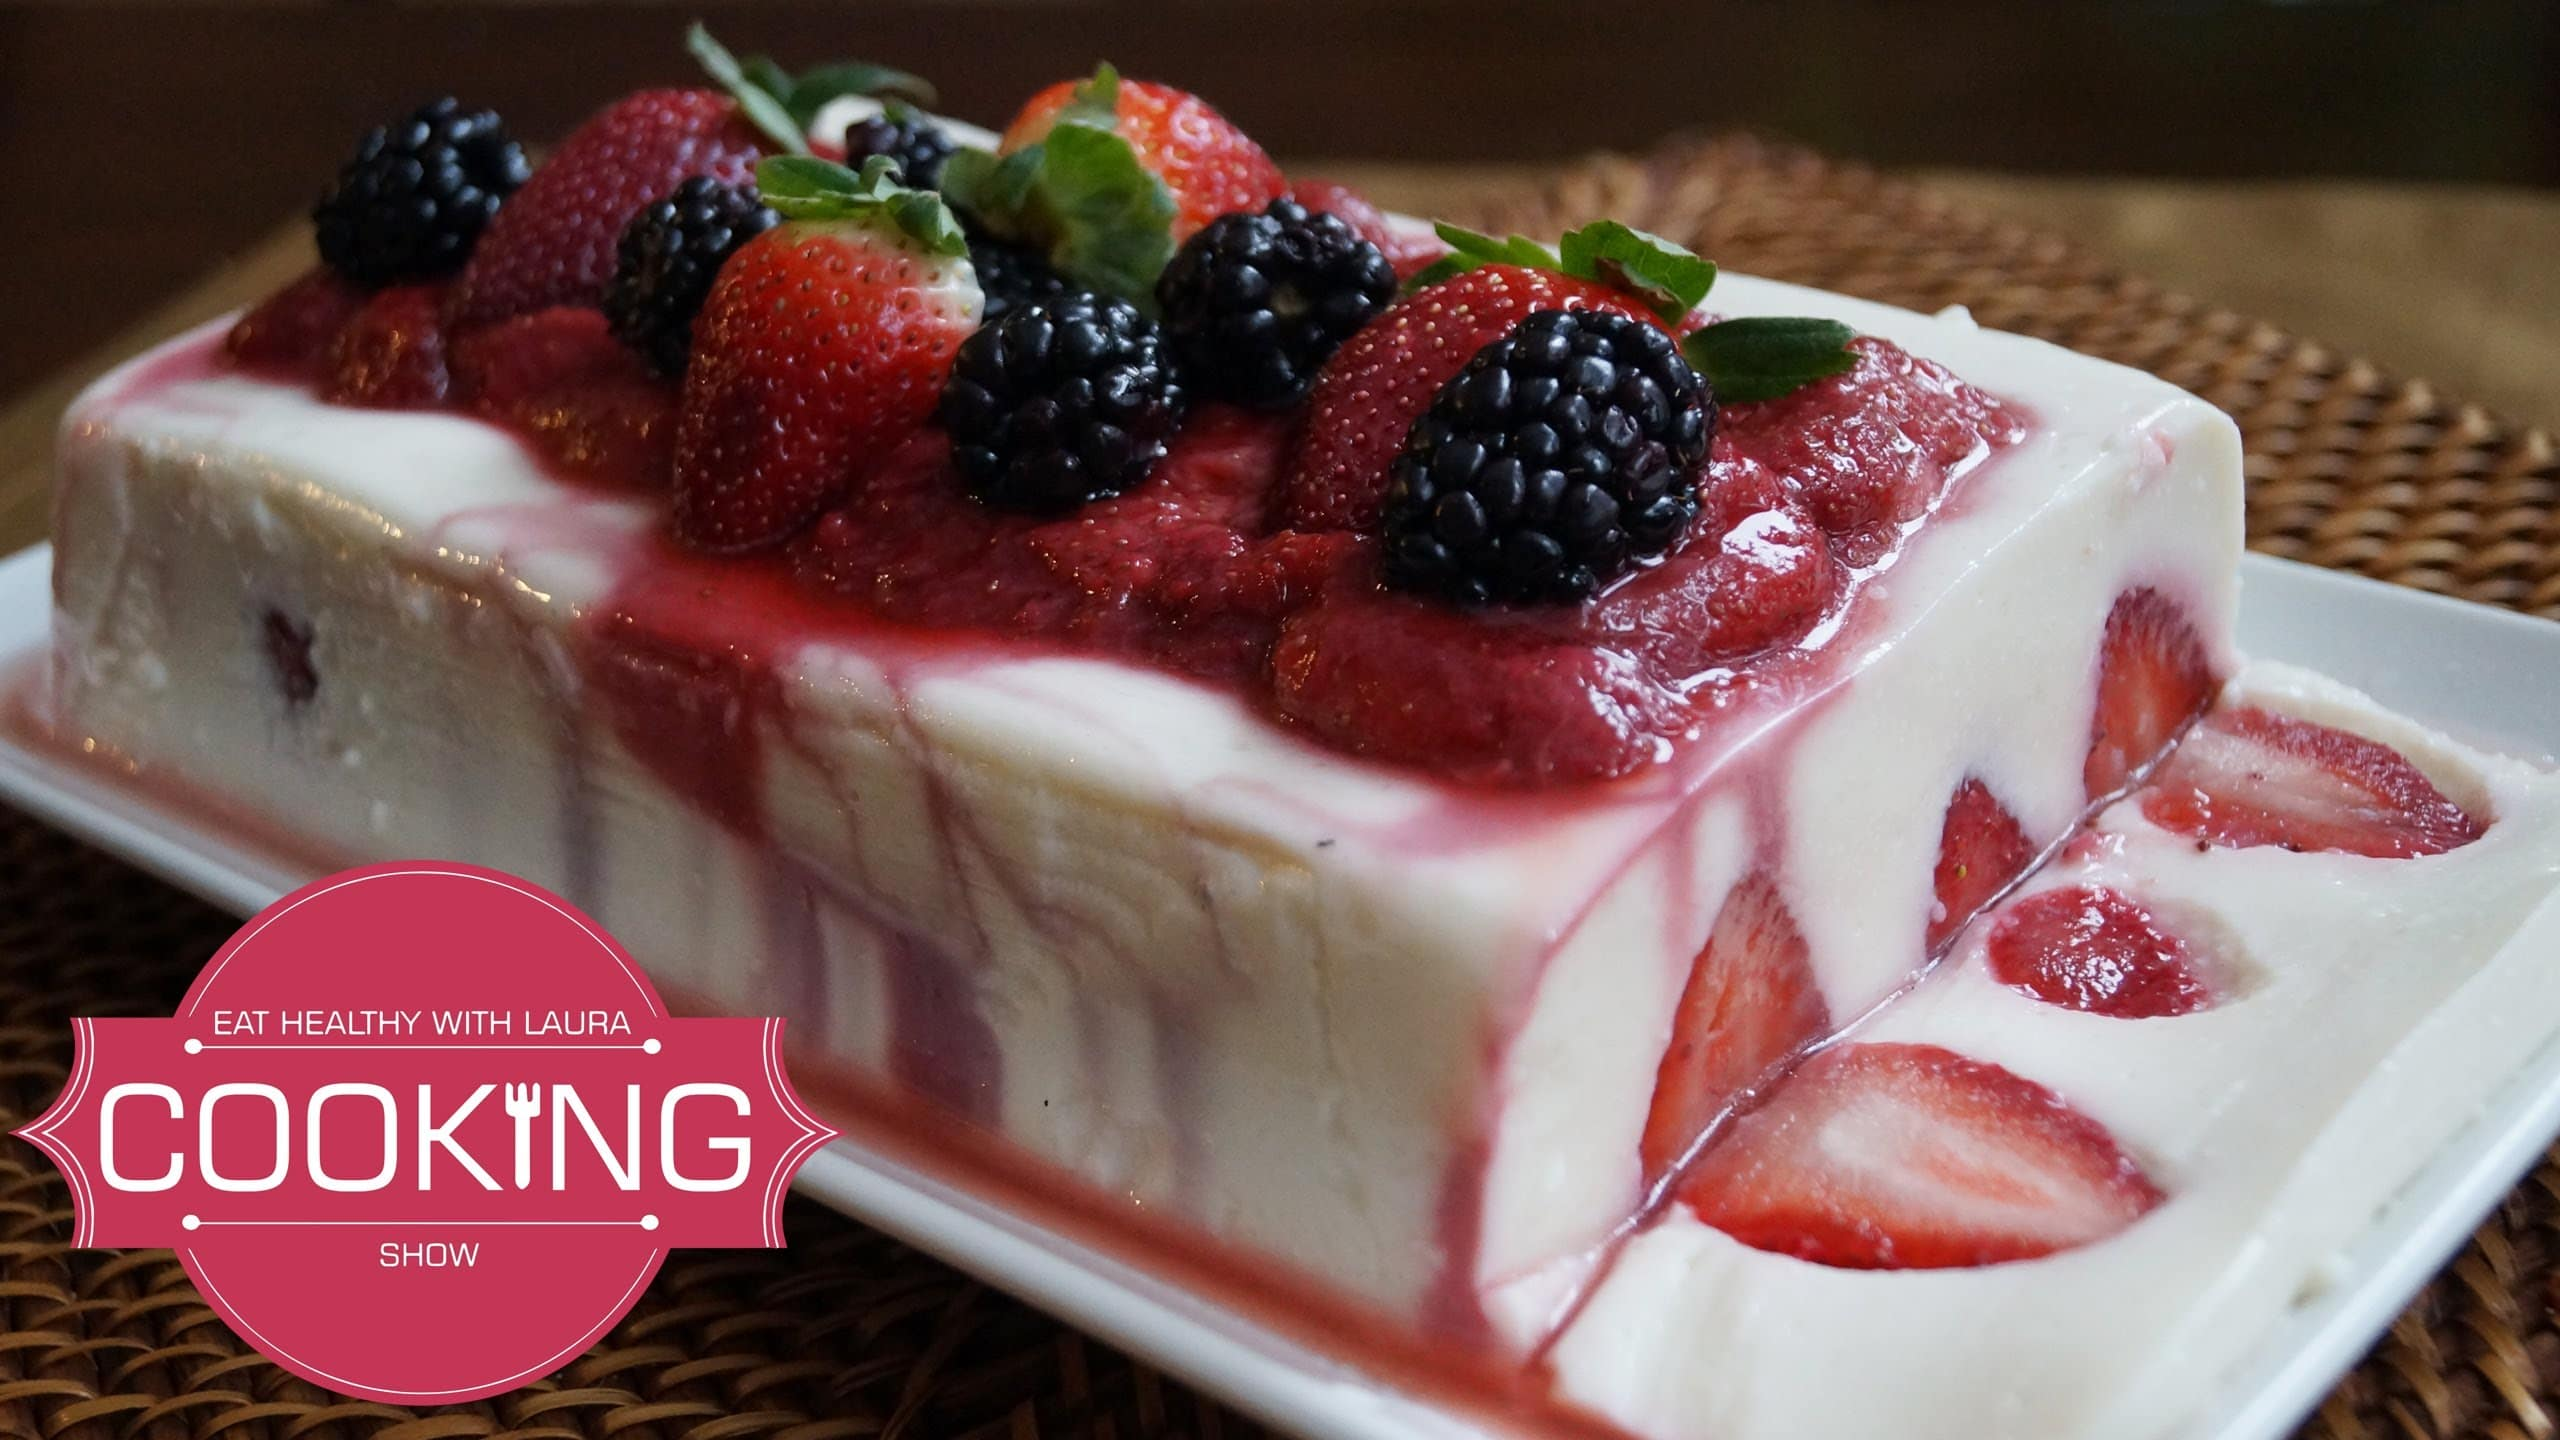 Strawberry Cake Recipe With Jelly: Deliciously Healthy Low-Fat Yogurt And Strawberry Dessert